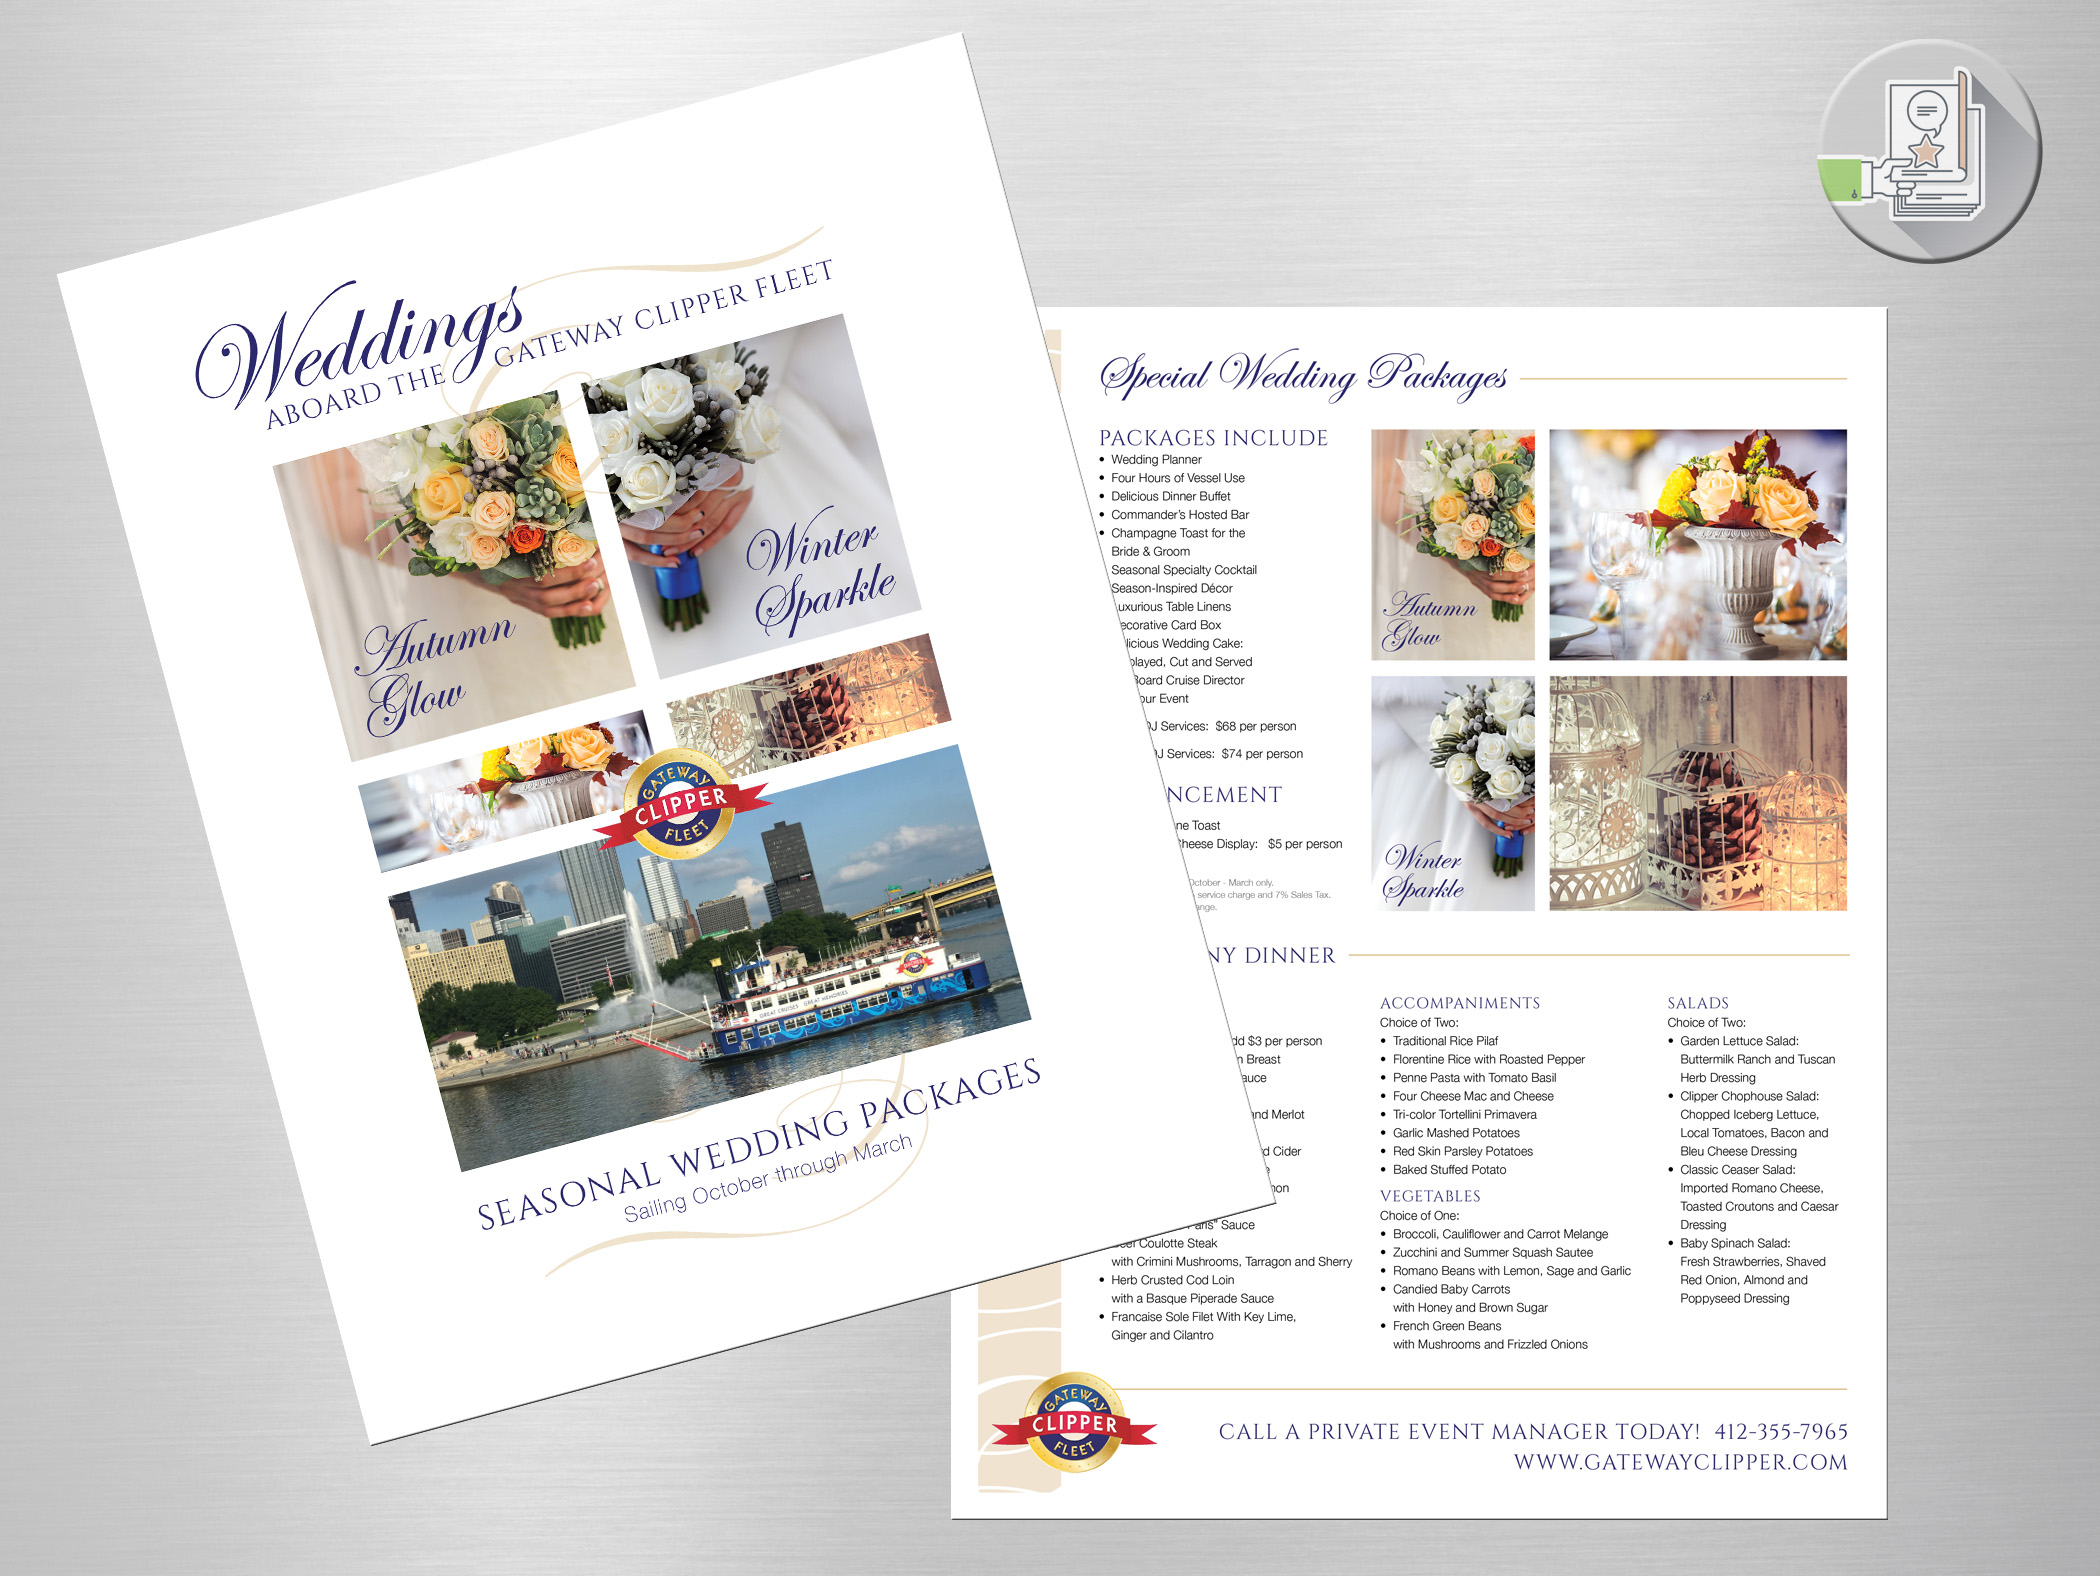 GCF - Seasonal wedding flyer pittsburgh 2.jpg